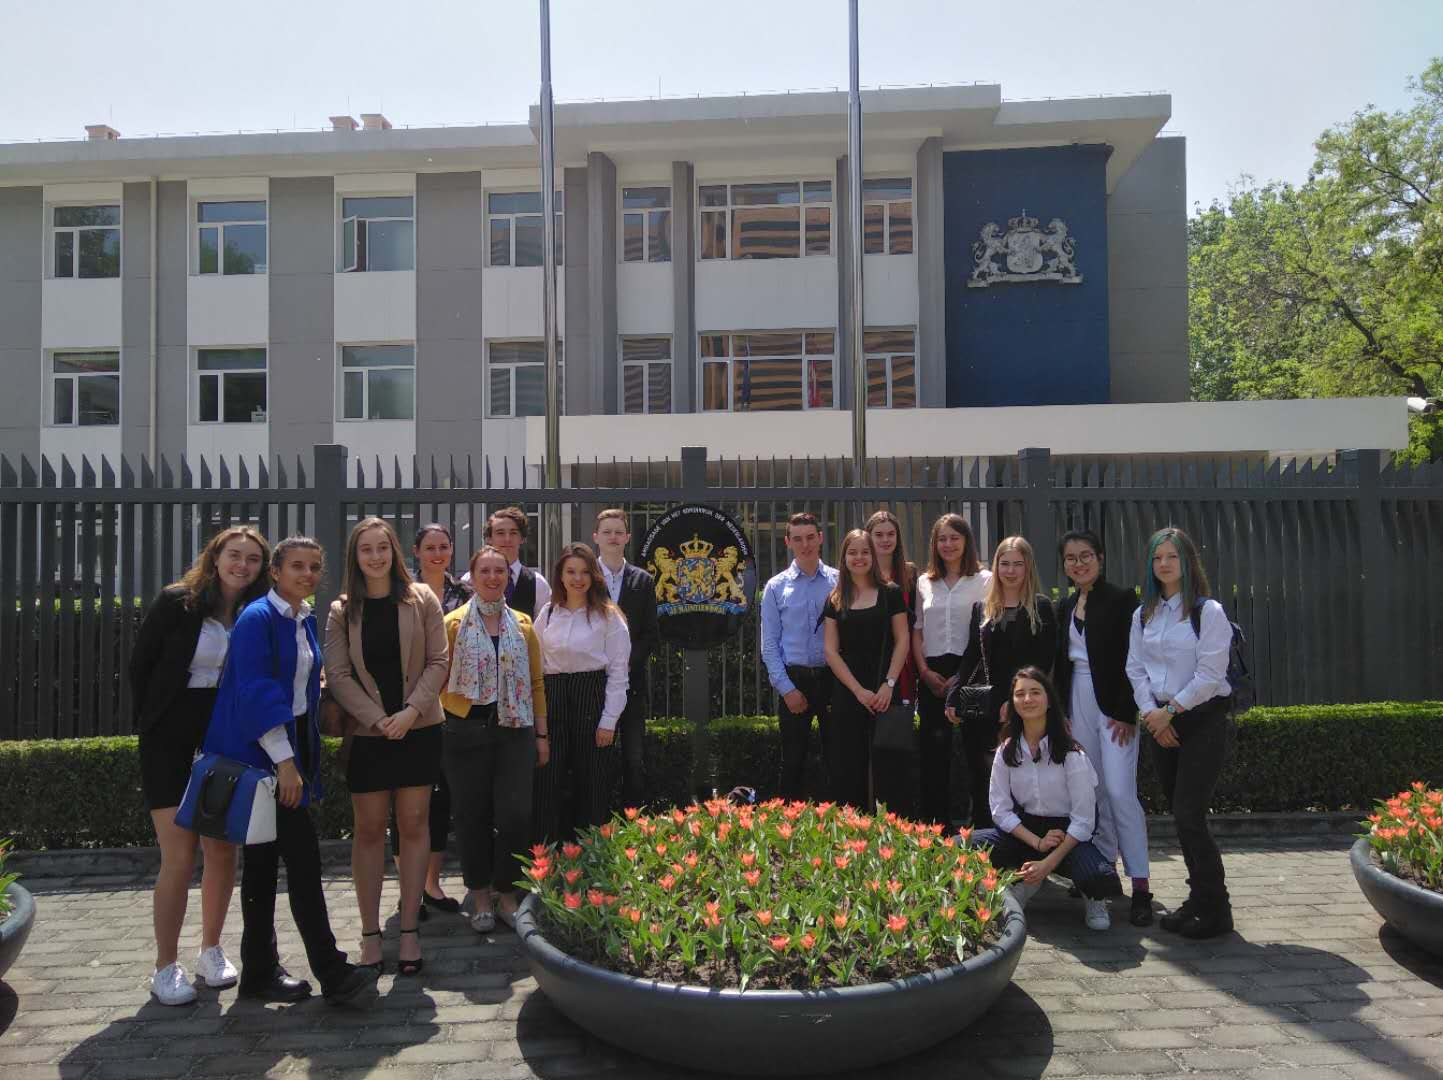 Globi trainees at the Dutch Embassy in Beijing